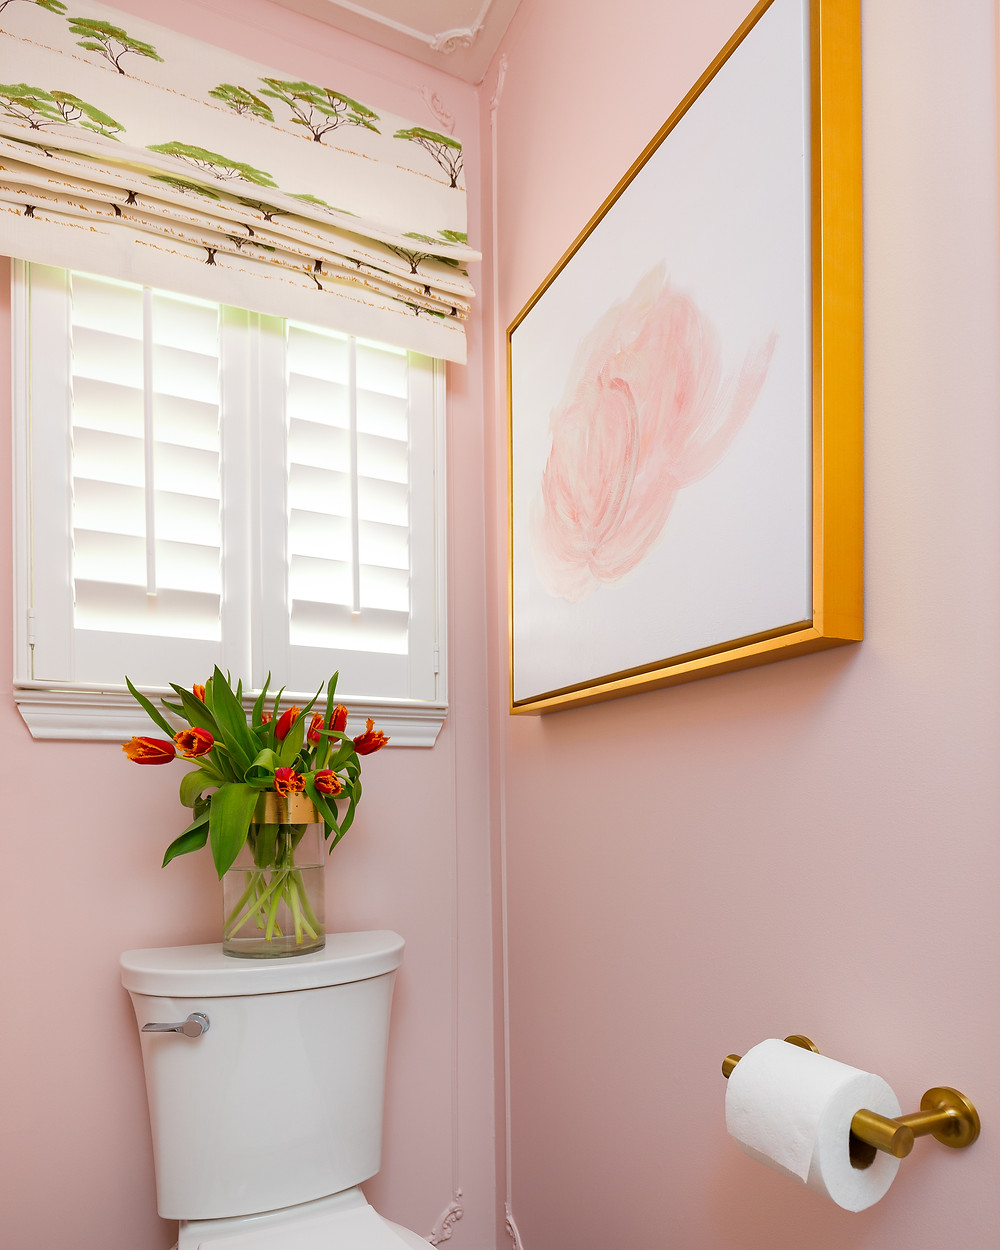 gold framed art in powder room with blush walls